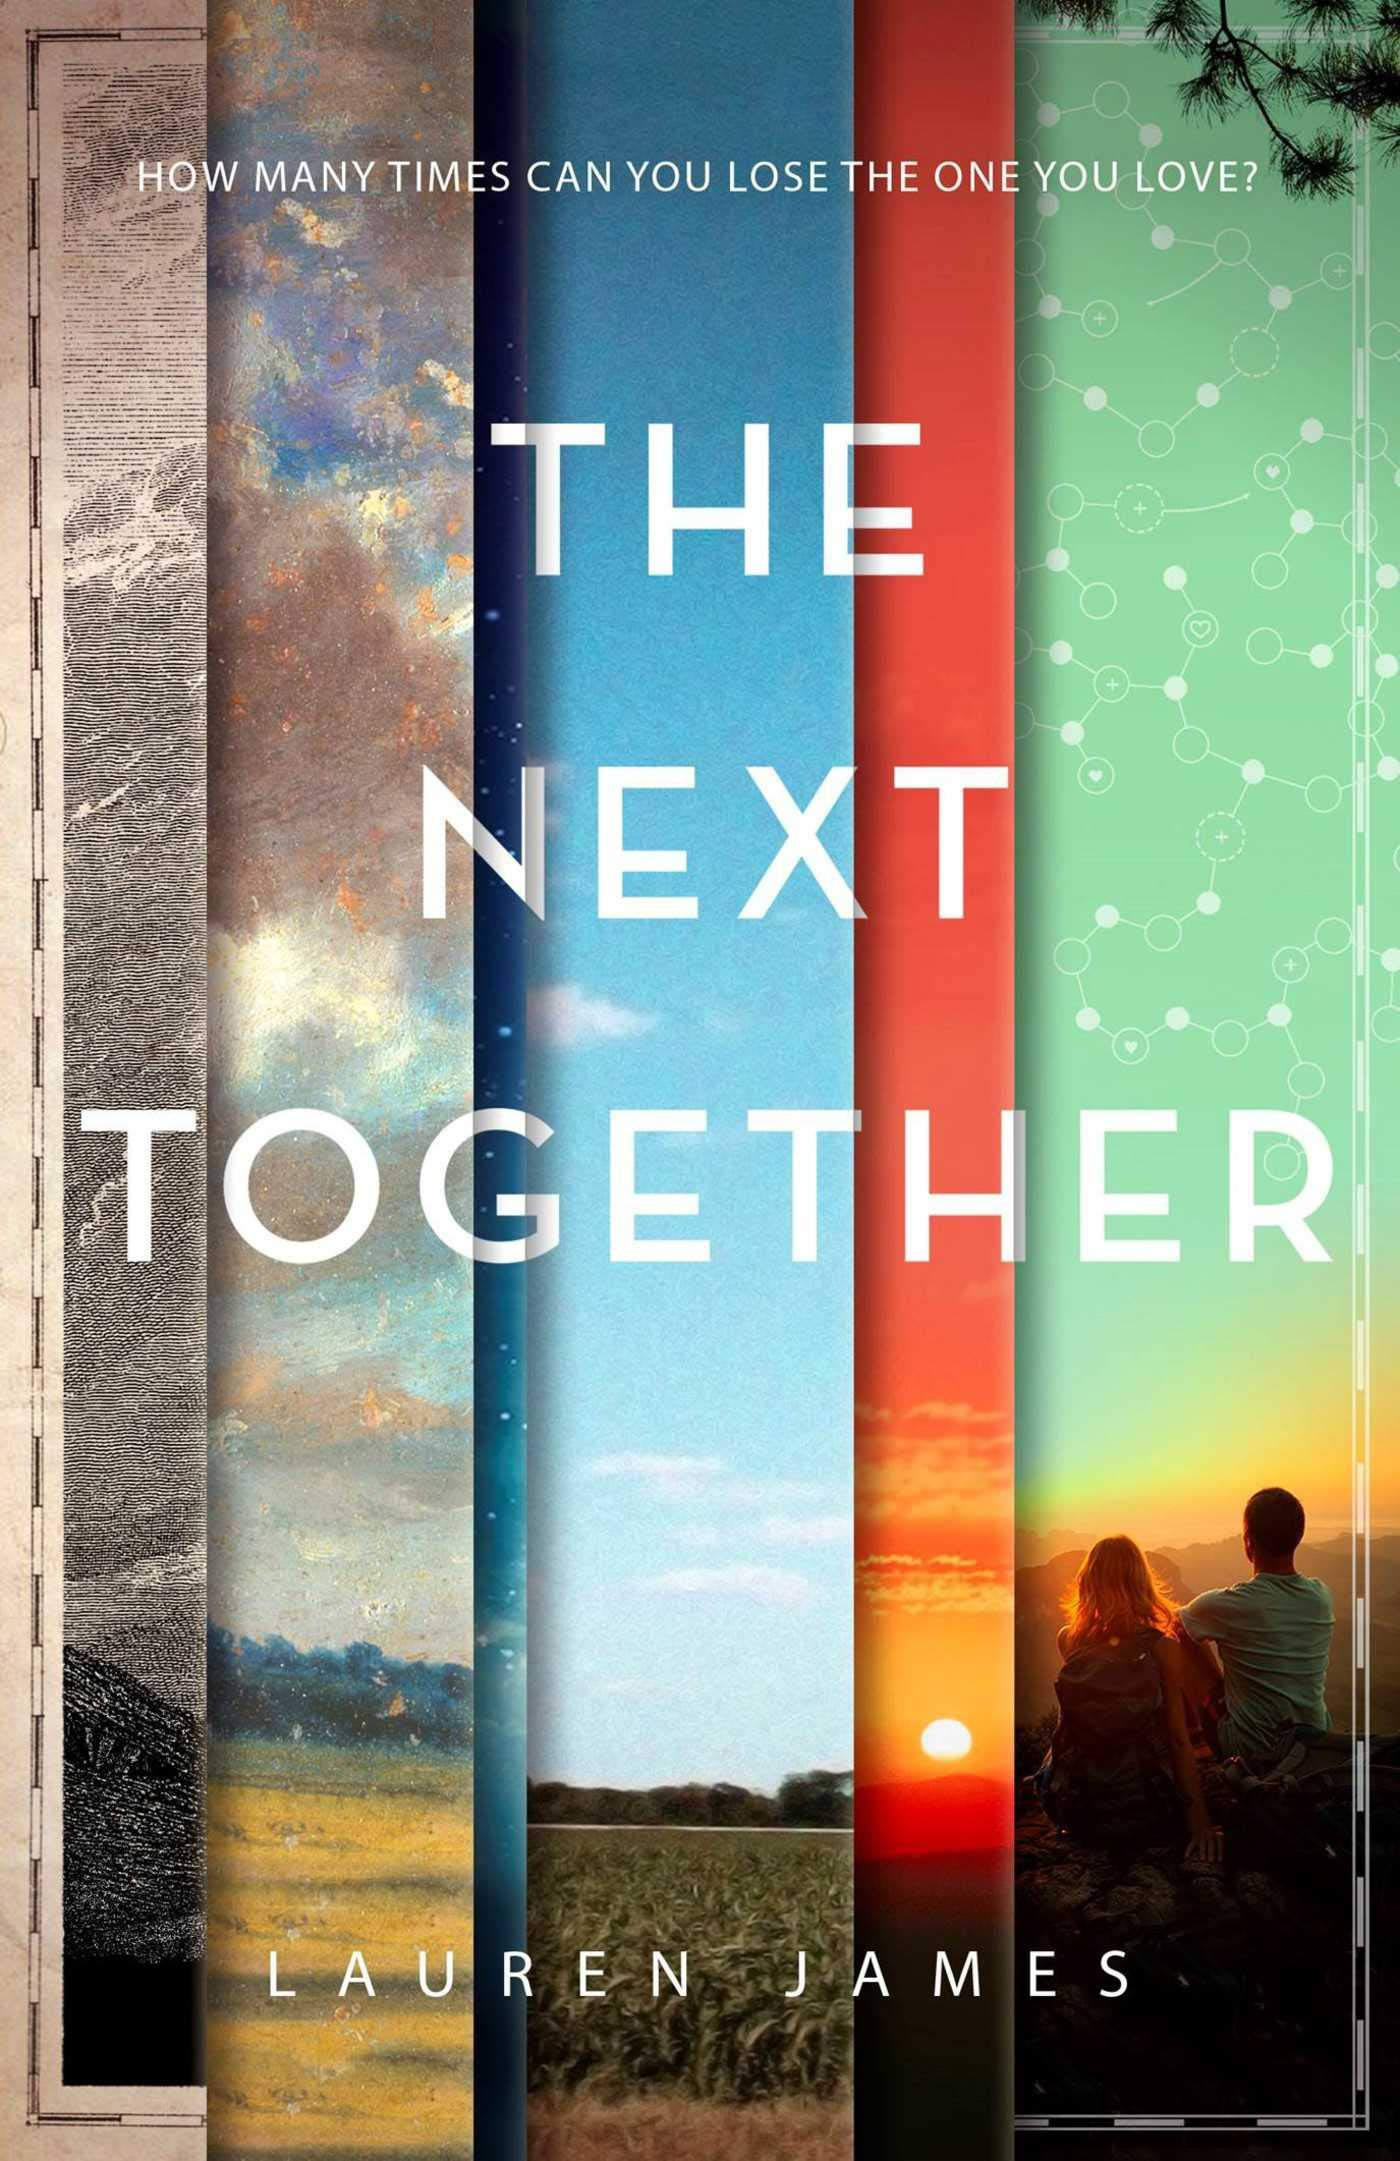 27a12edec Amazon.com: The Next Together (9781510710214): Lauren James: Books